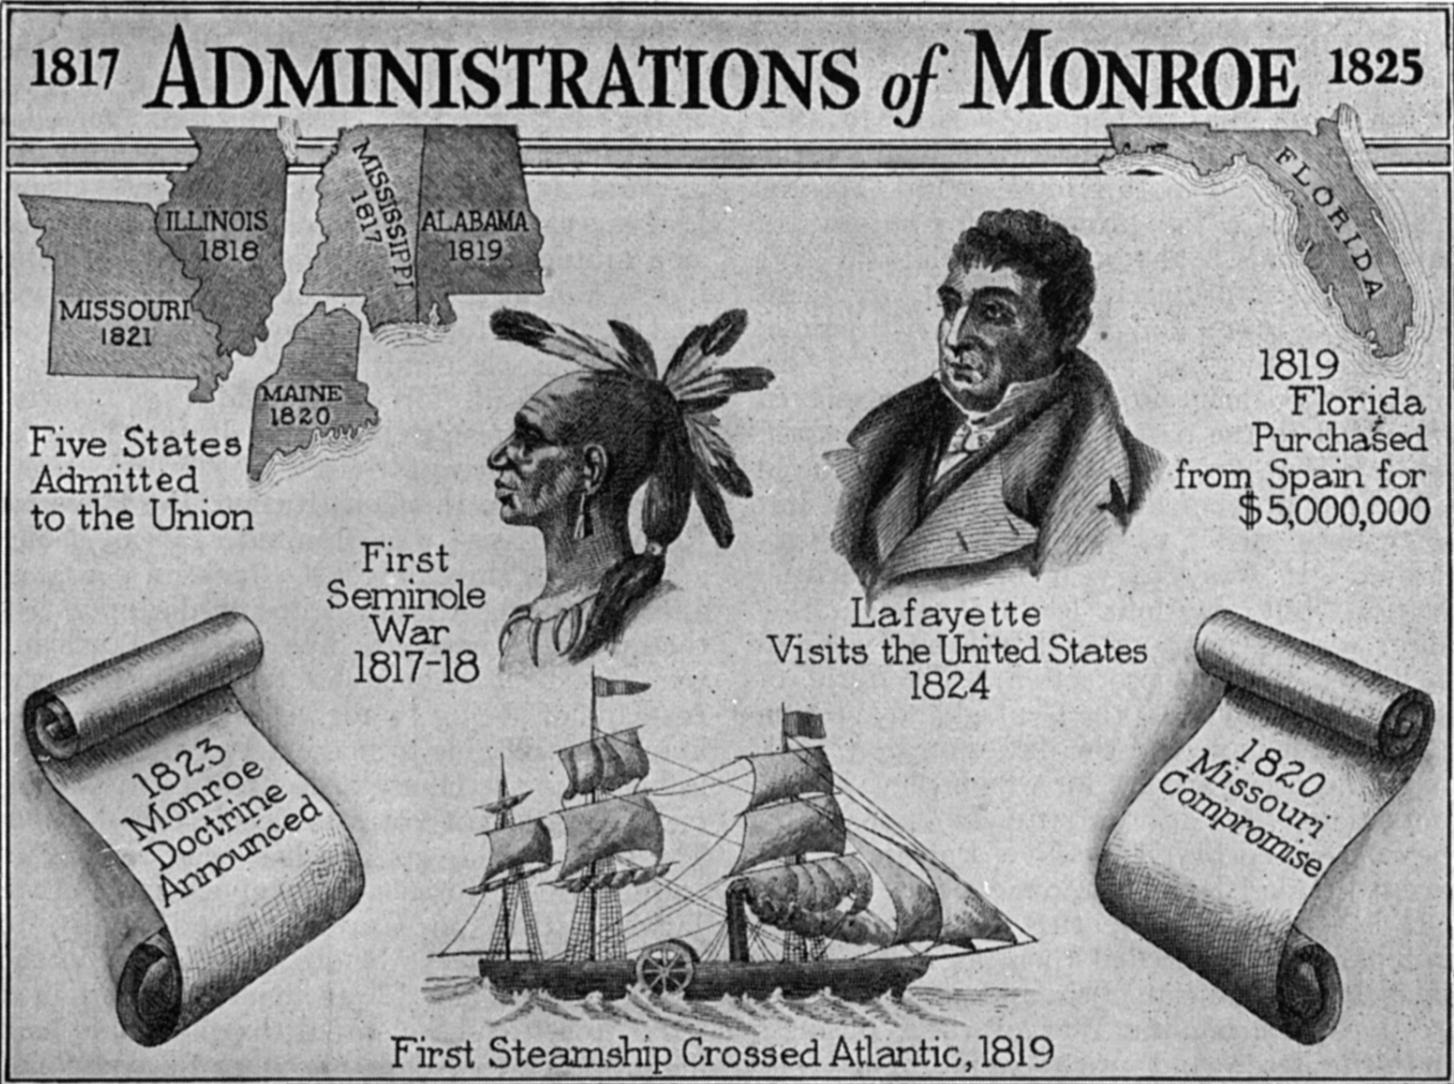 an overview of the 1823s monroe doctrine in the united states The monroe doctrine was first set out in a speech by president james monroe on december 2, 1823 the ideas are grounded in much earlier thinking, such as the farewell address of george washington, in which he inveyed against close political association with european states, and in the first inaugural address of thomas jefferson.